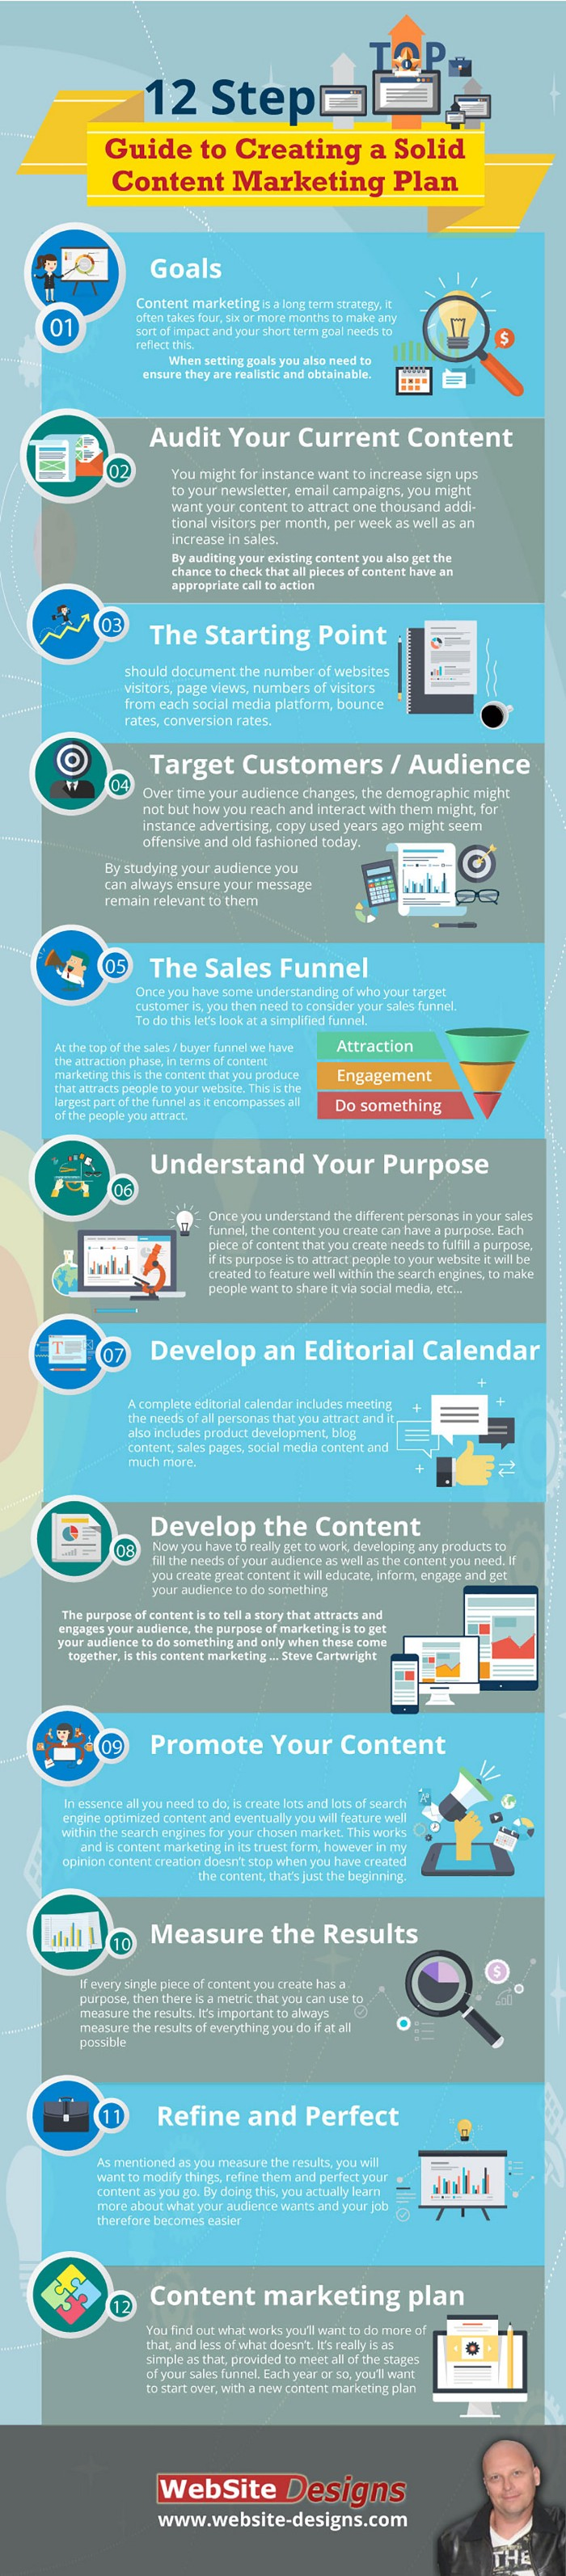 content-marketing-tips-infographic